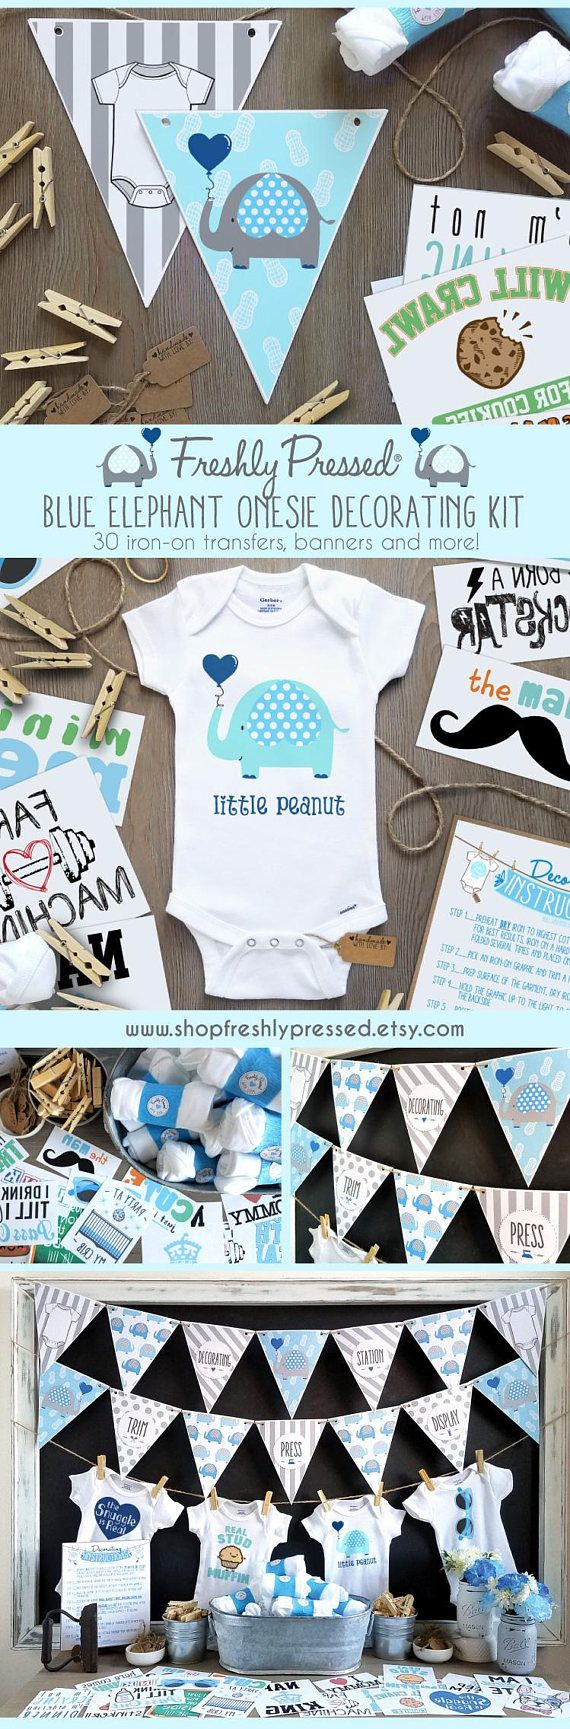 Welcoming a Little Peanut into your family? Entertain your baby shower guests with this darling Blue Elephant themed Onesie® Decorating kit! With 30 iron on transfers and Onesies®, its the perfect entertainment for larger baby showers. Complete with banners, clothes pins, hangtags,